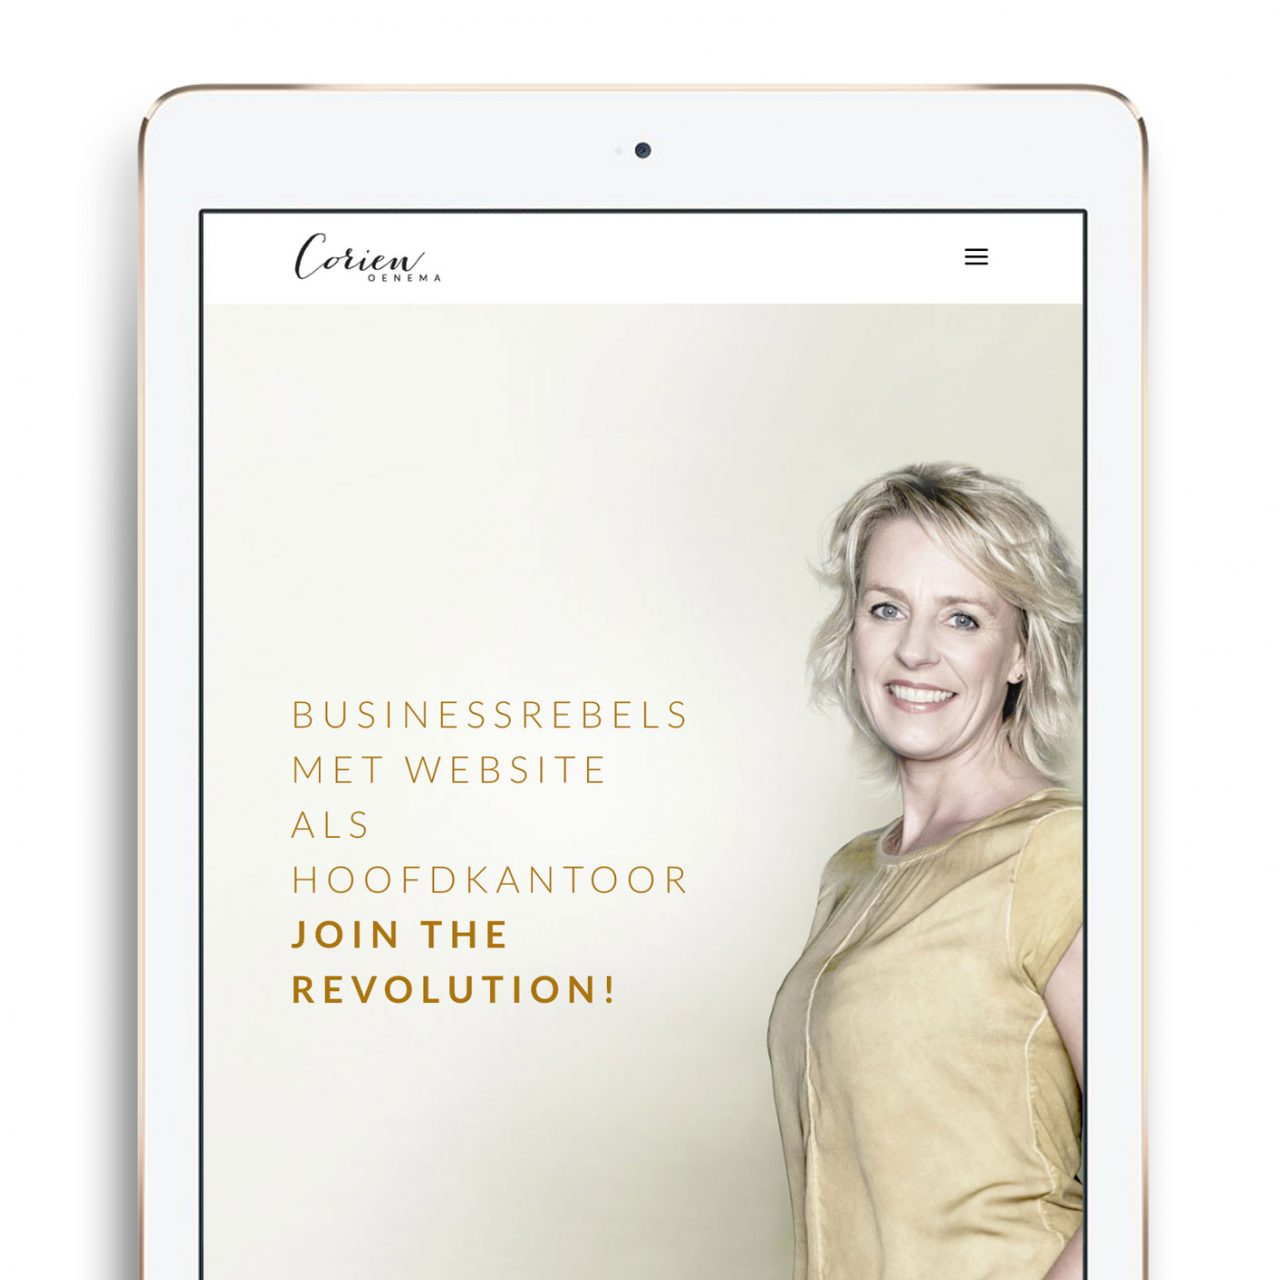 Studio Chris10 - Huisstijl en website voor Corien Oenema